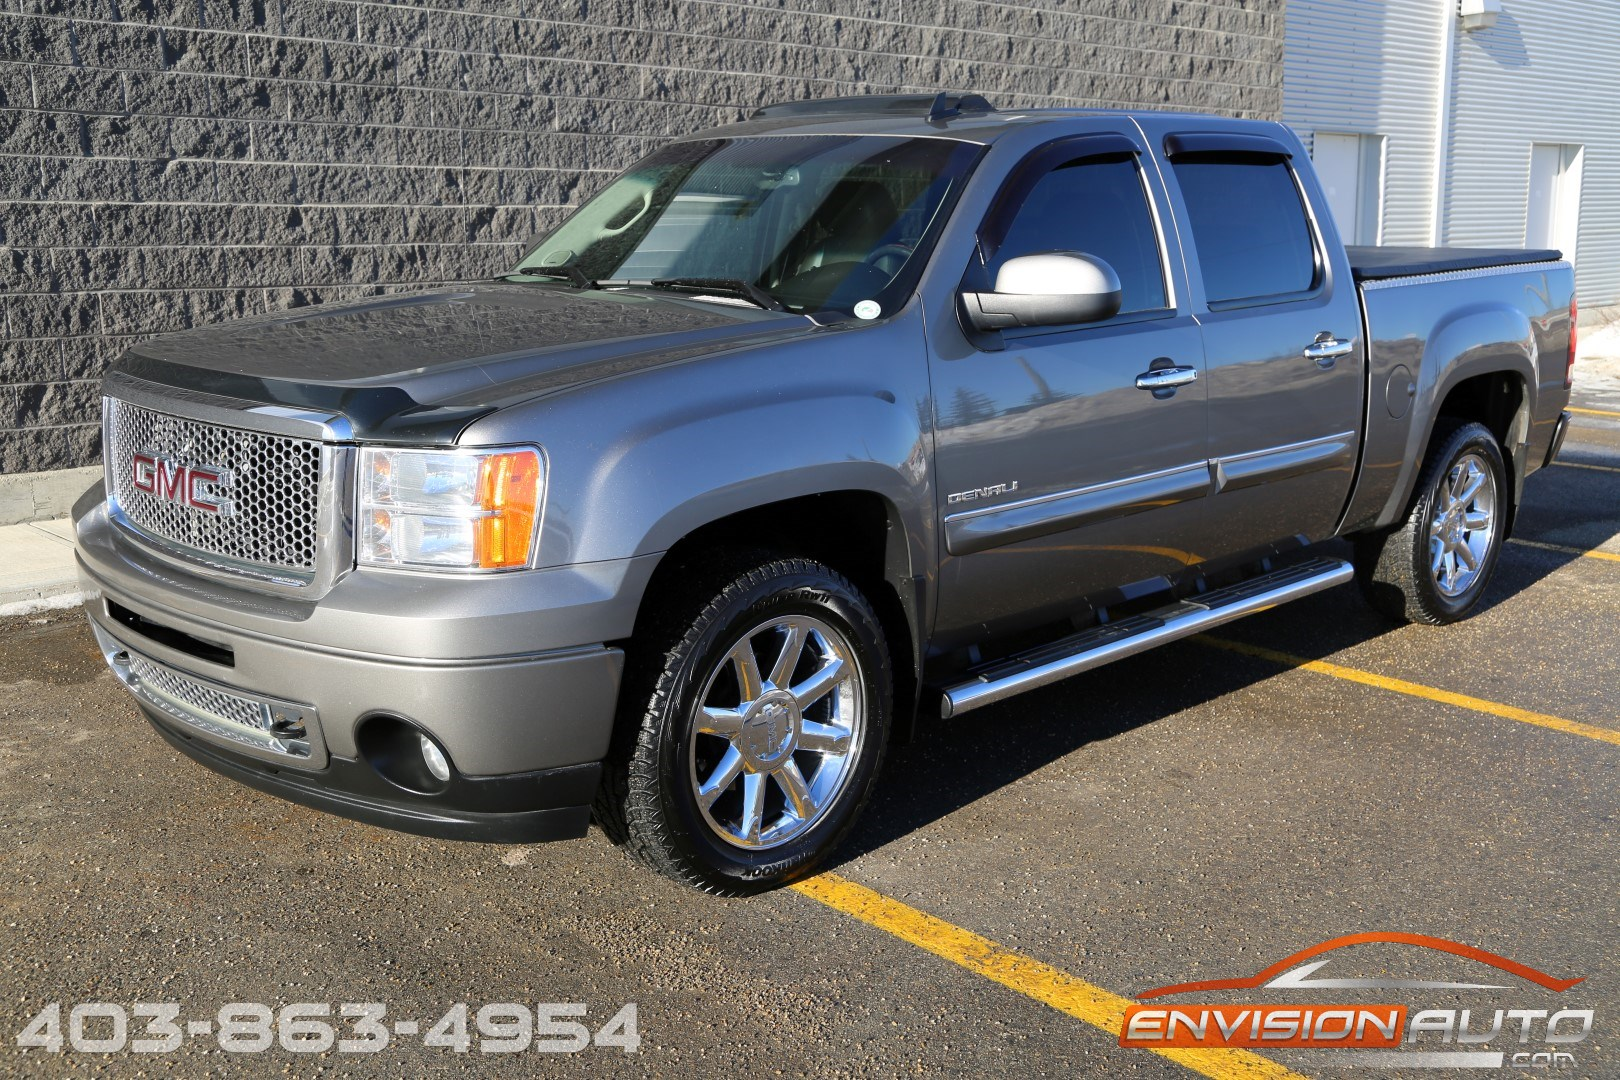 2012 gmc sierra 1500 denali awd 6 2l v8 navi heated cooled seats envision auto. Black Bedroom Furniture Sets. Home Design Ideas